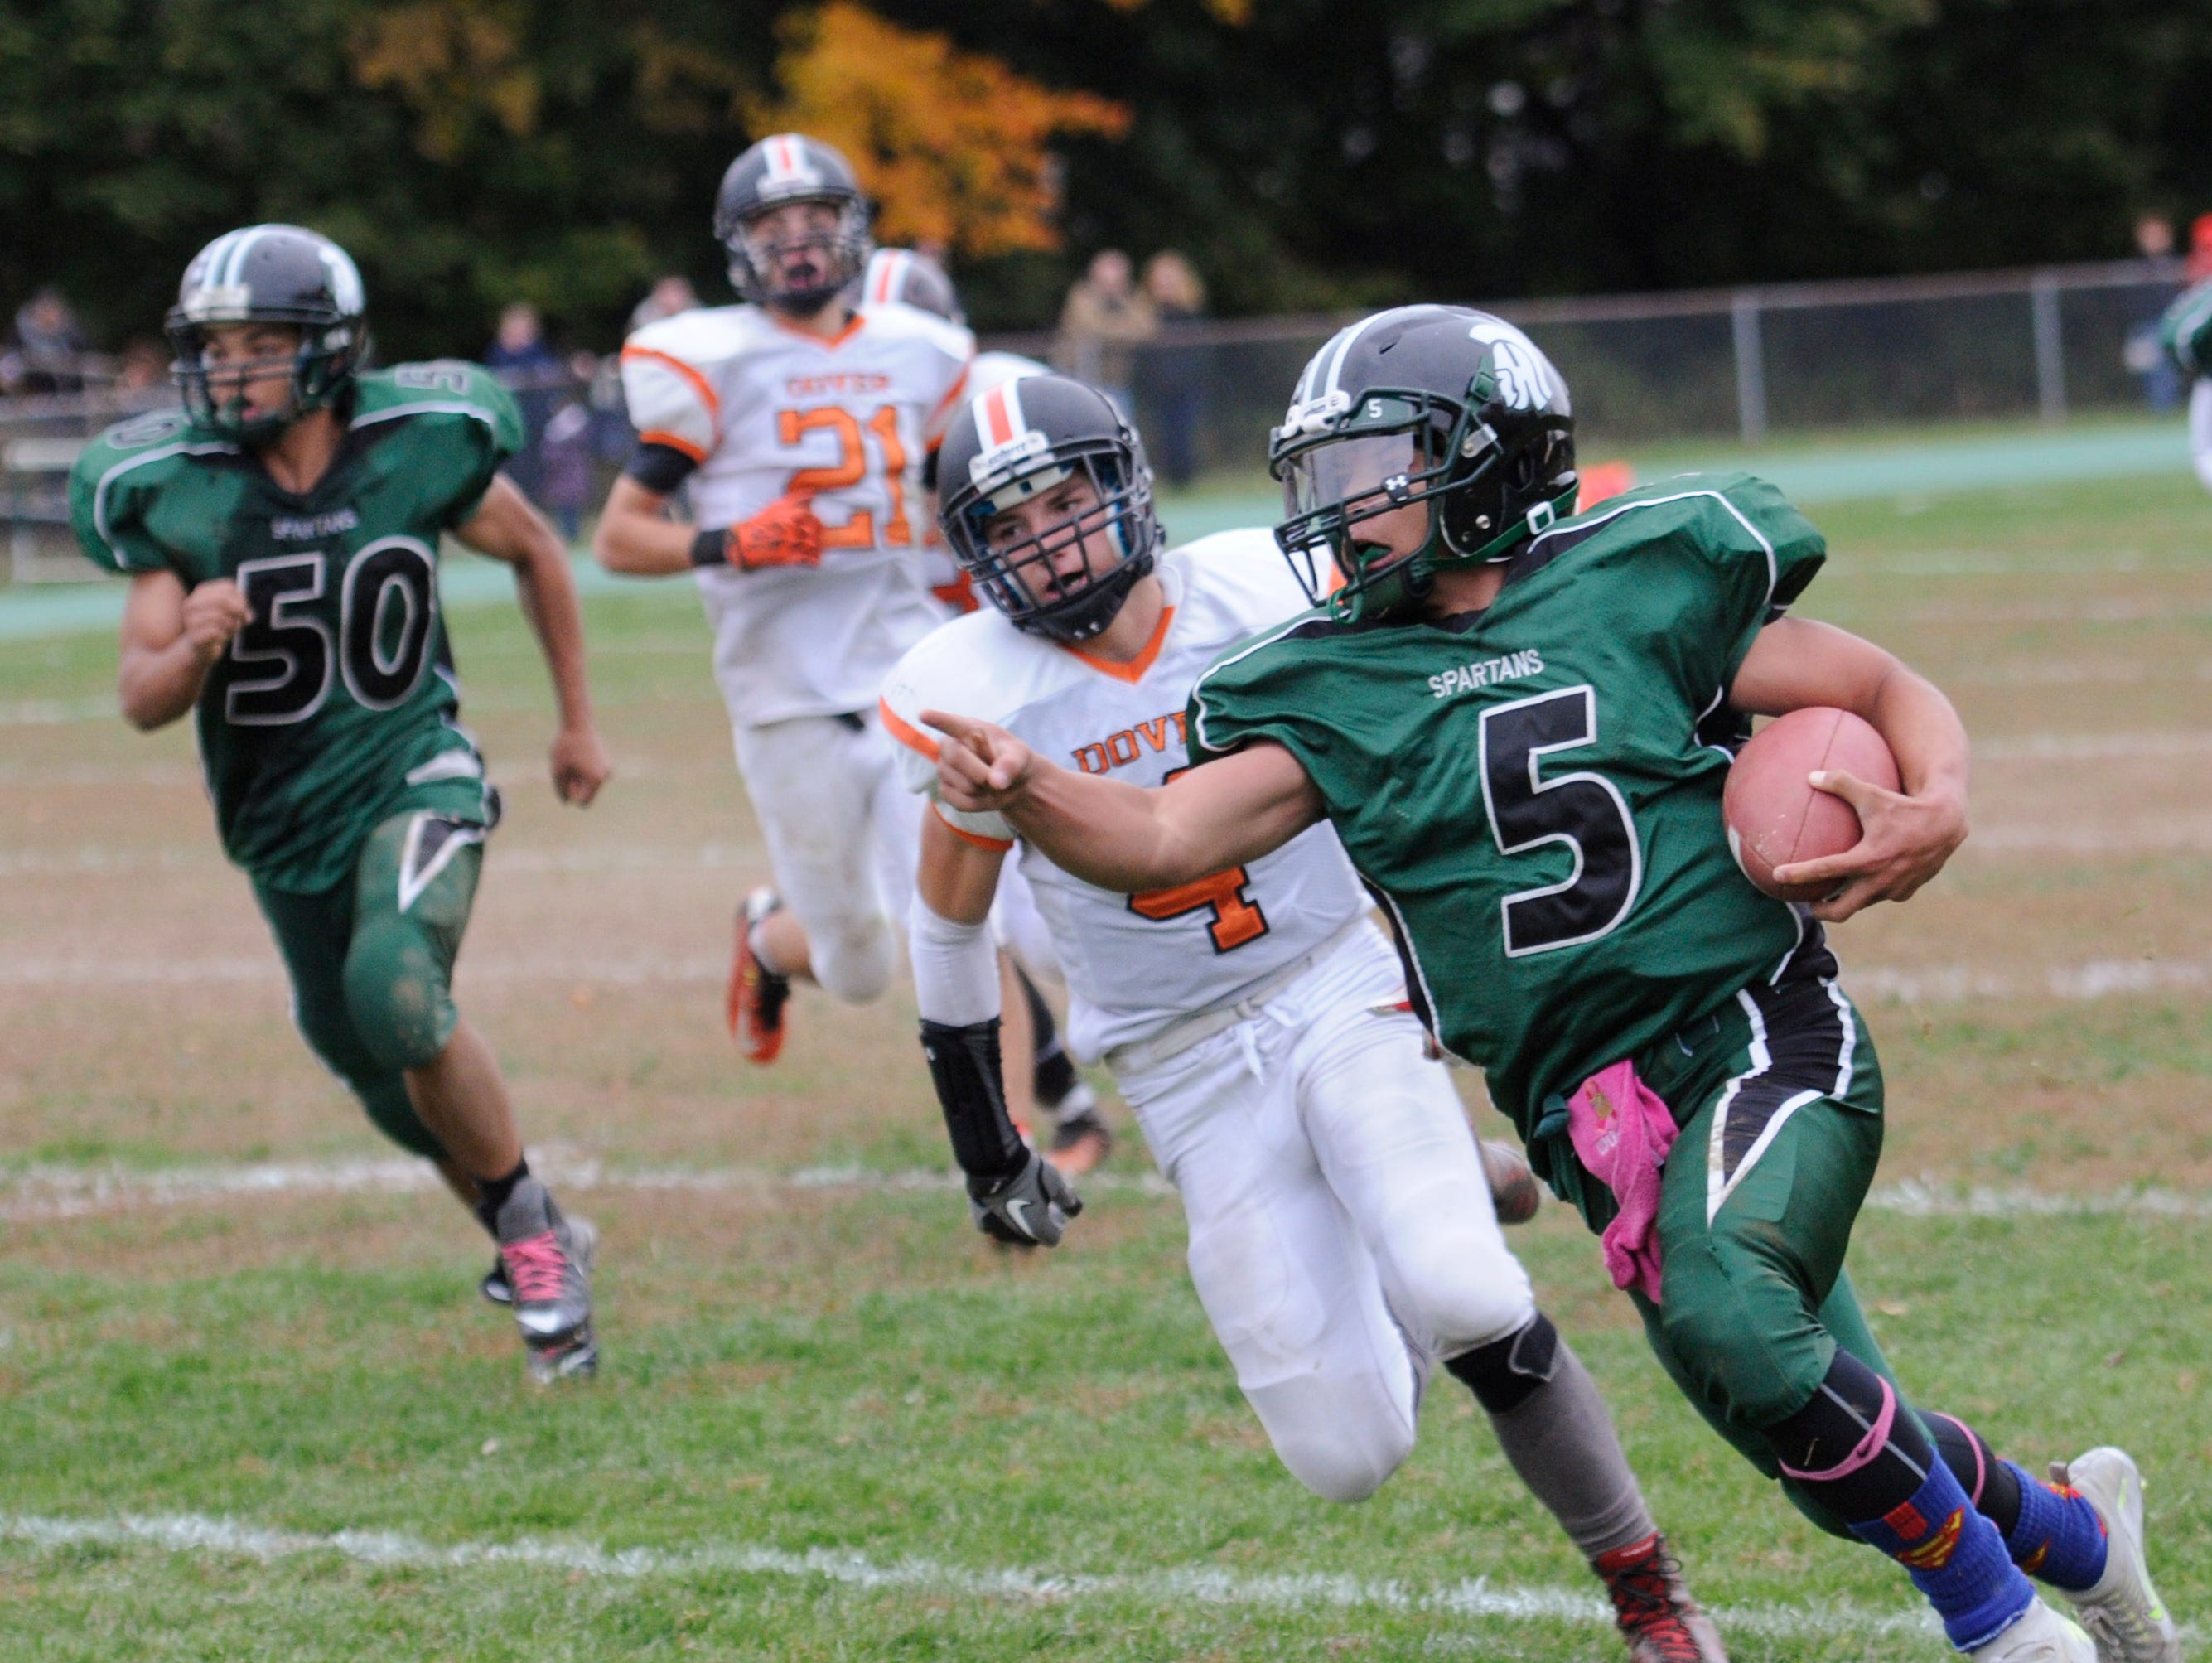 Spackenkill High School's Camron Abalos points out a tackler as Dover's Colin Belanger pursues during an Oct. 24, 2015 game in Poughkeepsie.